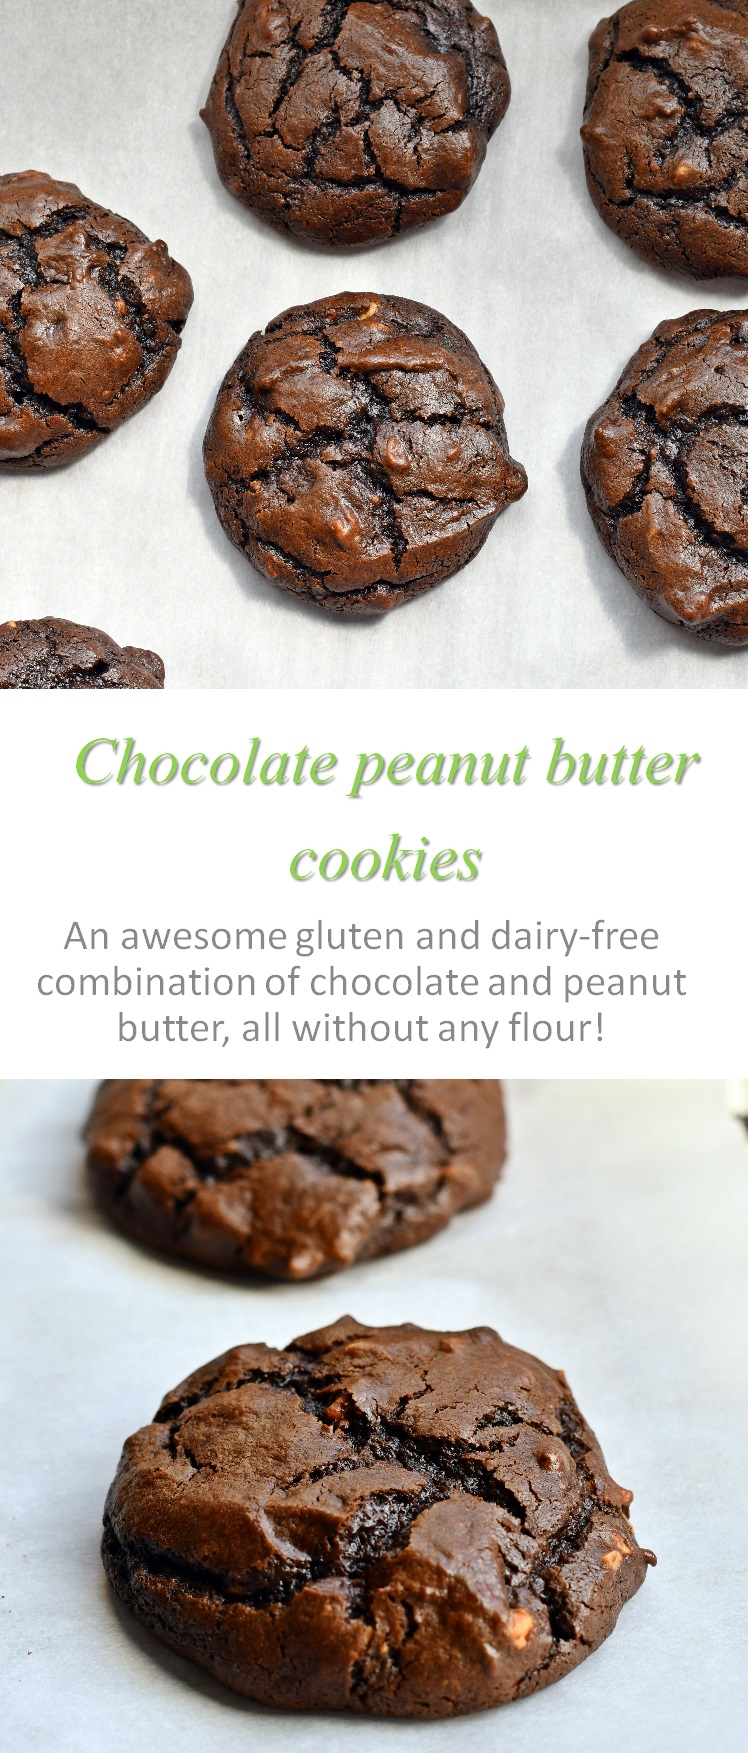 A yummy flourless chocolate peanut butter cookie, using no gluten, no dairy but so very easy! #peanutbutter